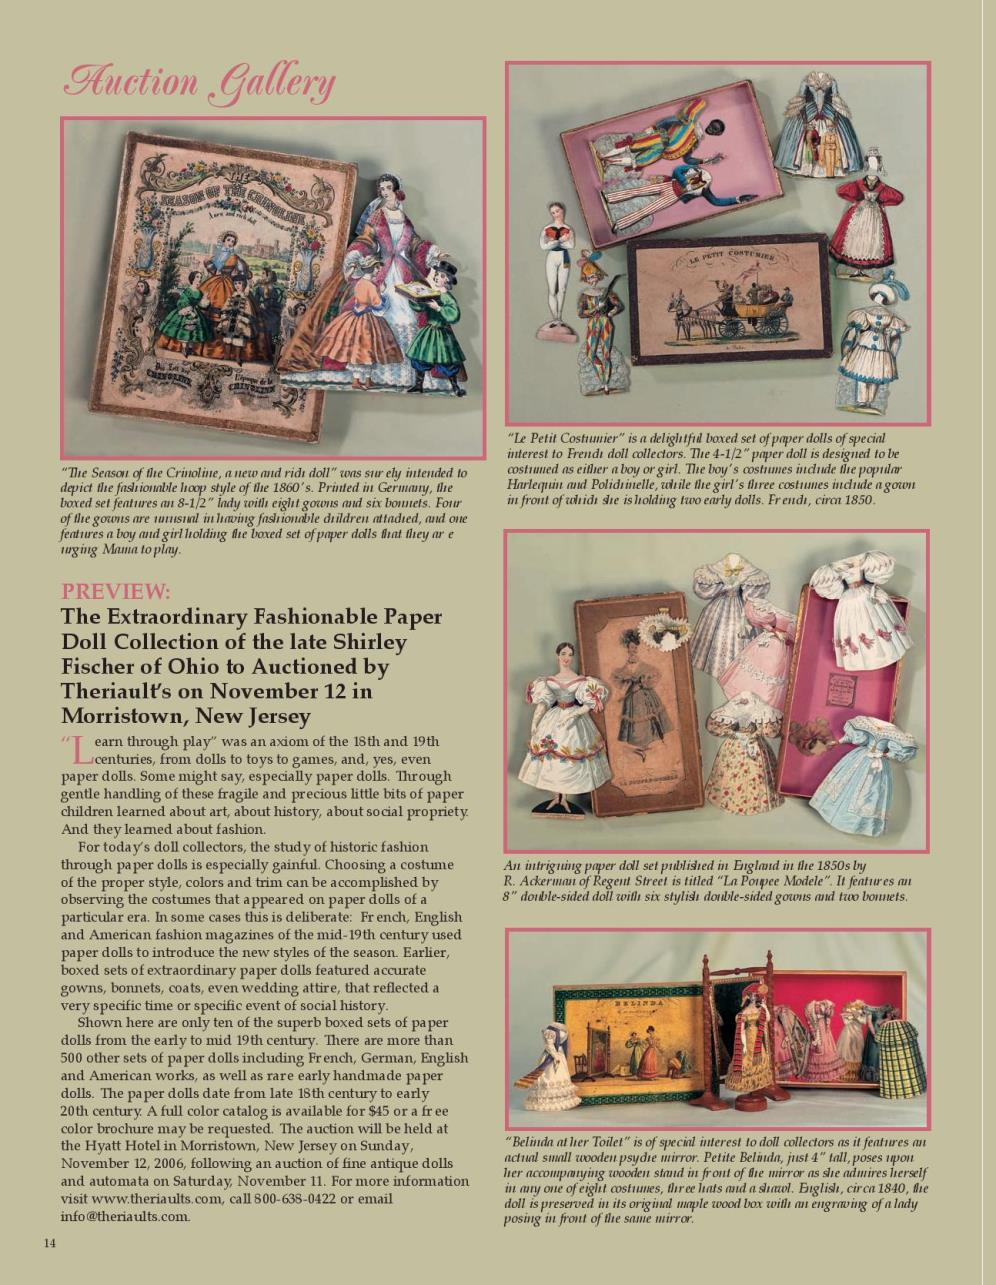 The Extraordinary Fashionable Paper Doll Collection of the late Shirley Fischer of Ohio to Auctioned by Theriault's on November 12 in Morristown, New Jersey